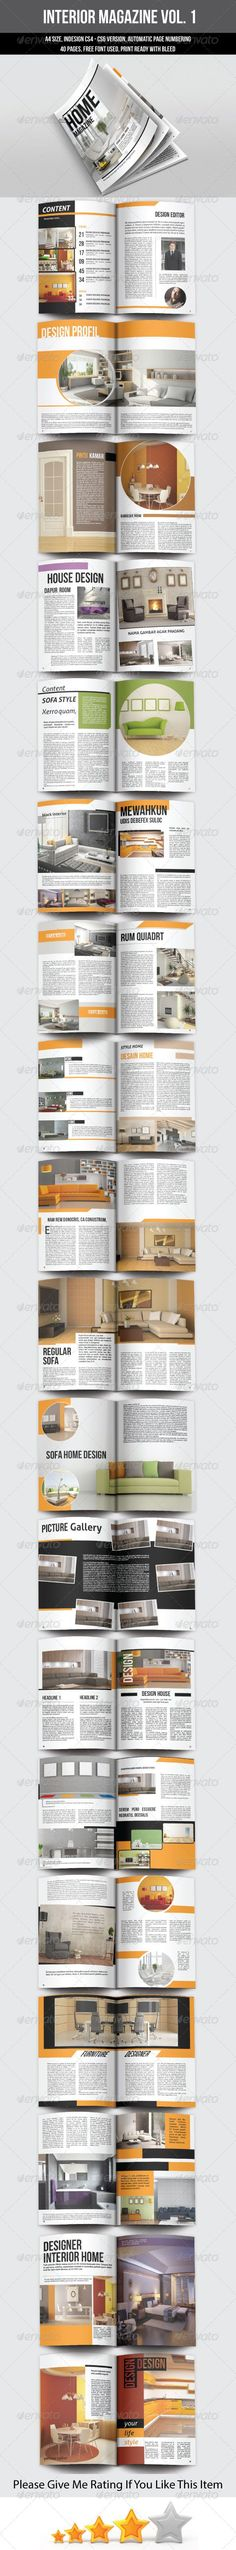 A5 Portrait Interior Magazine Template by Rianda This is a professional and clean. with a minimalist design. can be used for all types of industries.40 page magazine that can meet